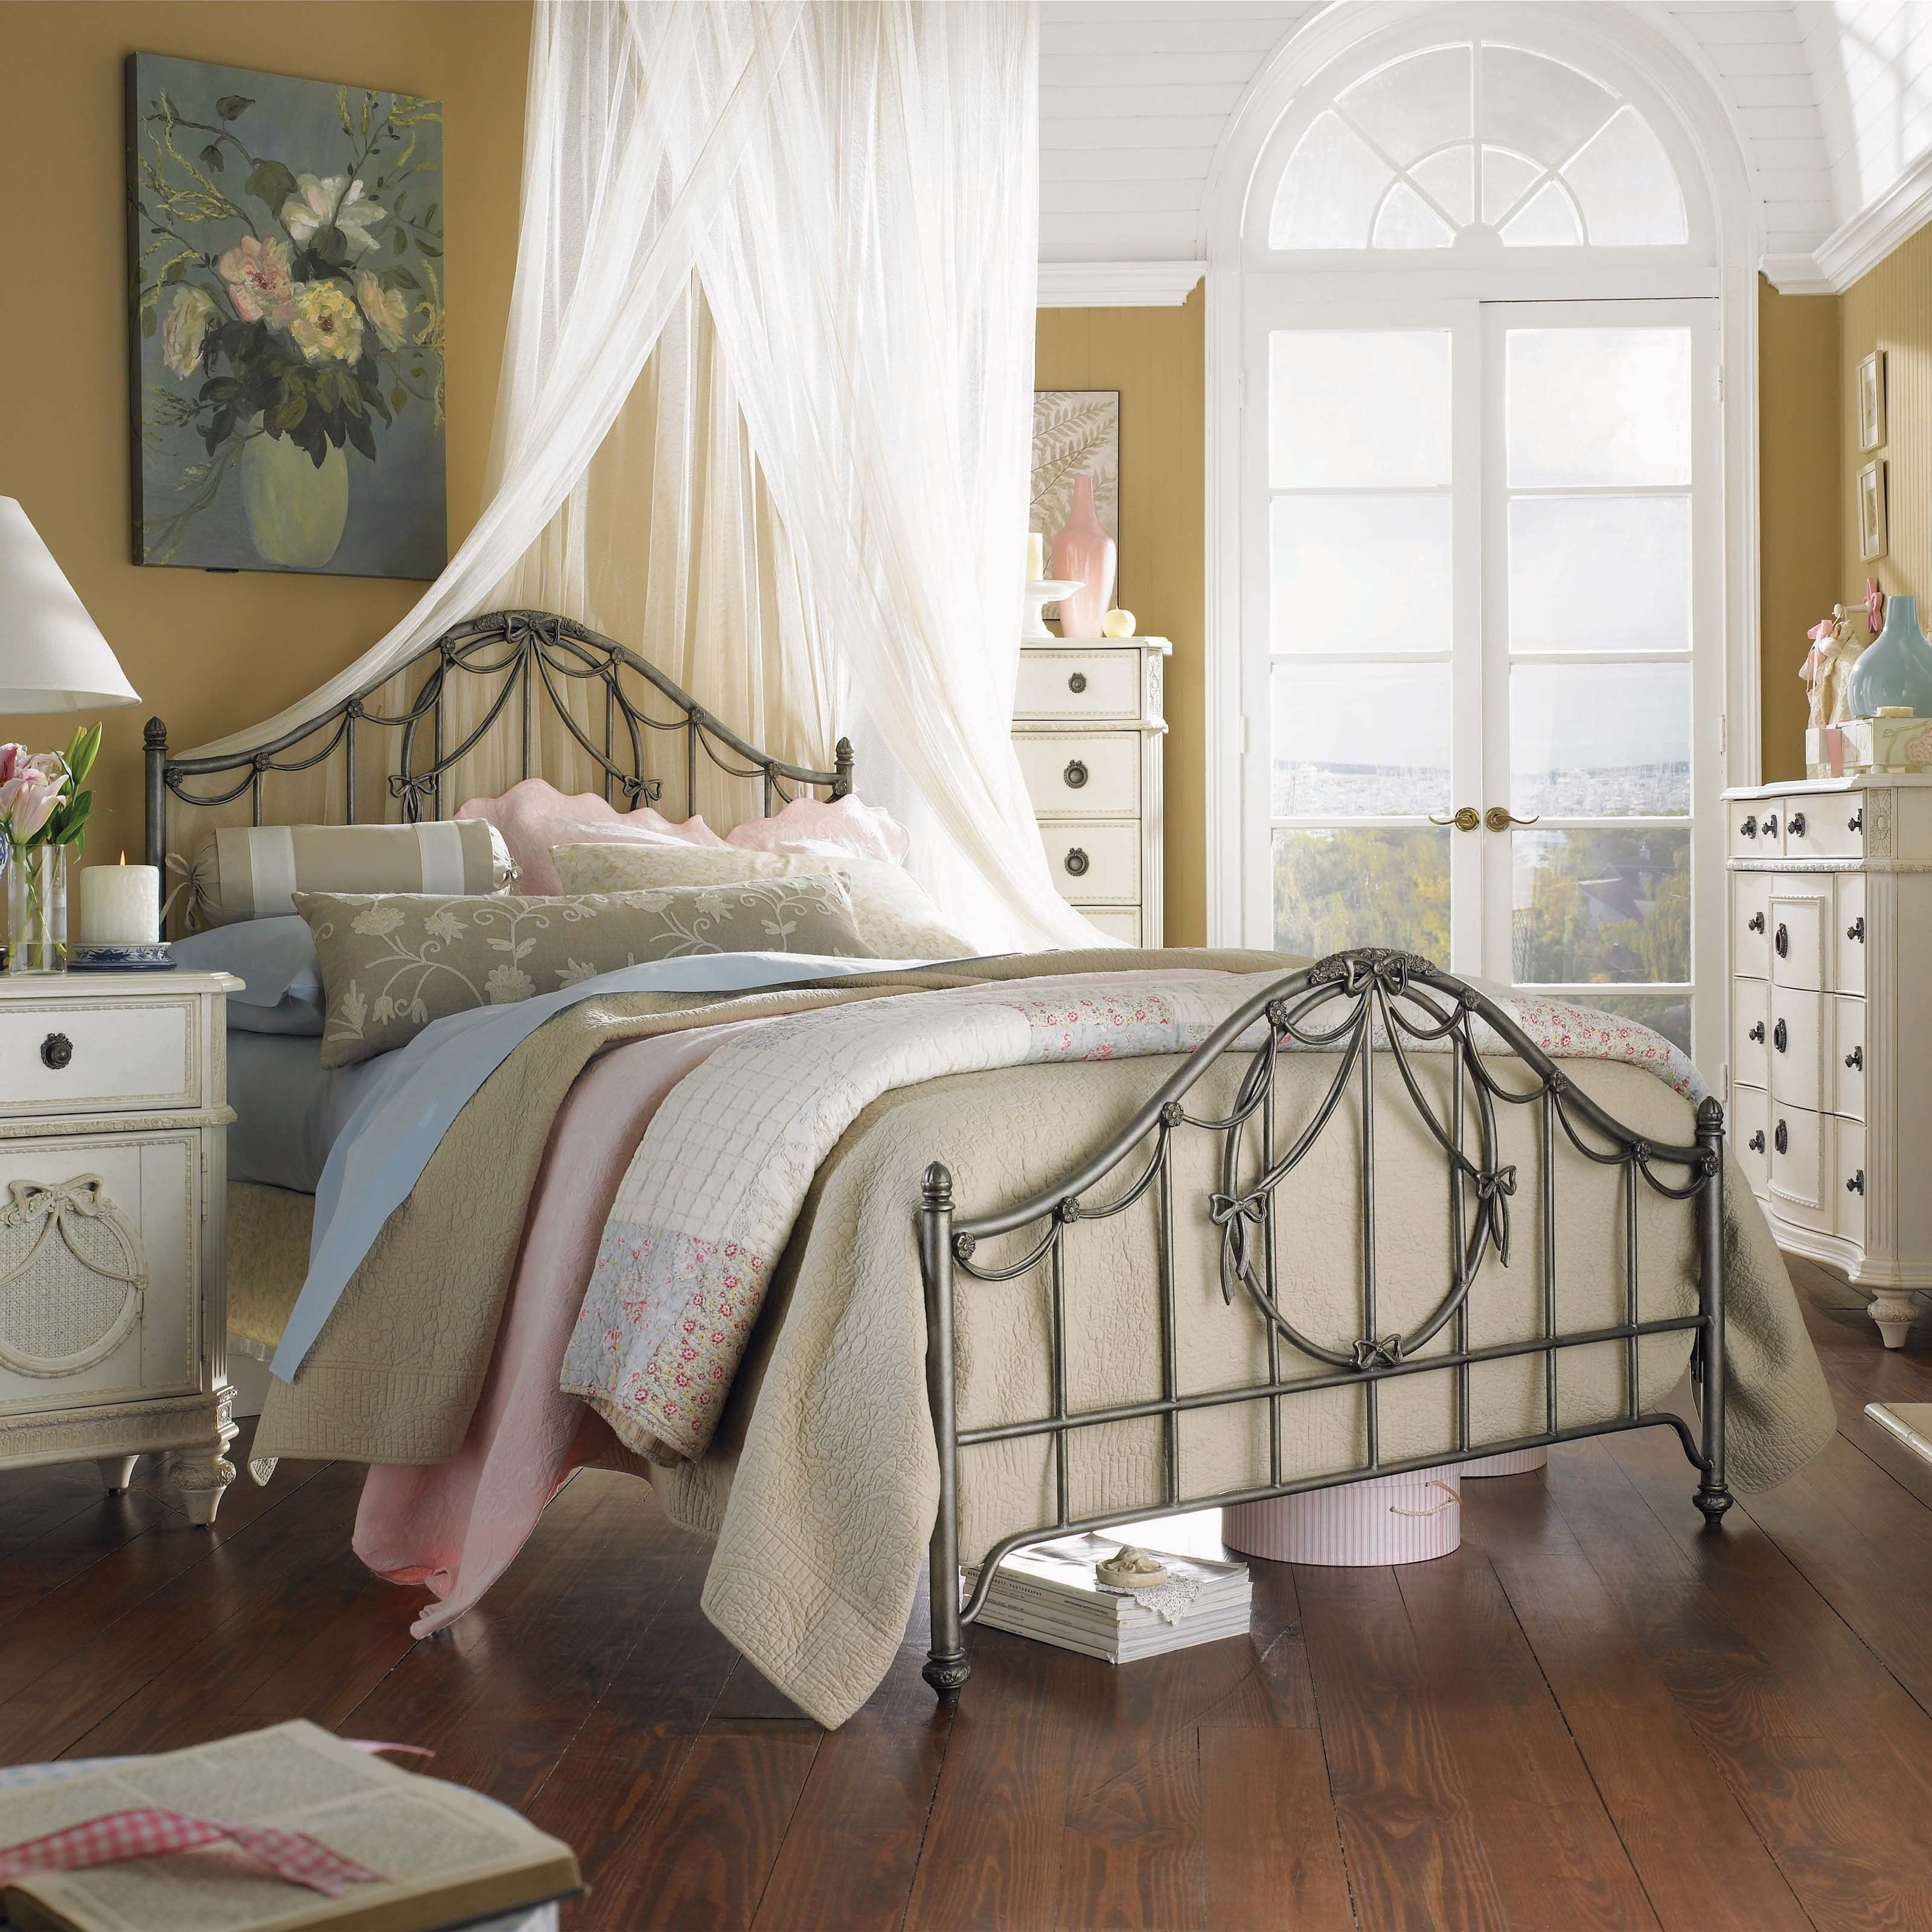 decor shabby of boho table furniture bedroom ideas image unfor chic inspirations lovely